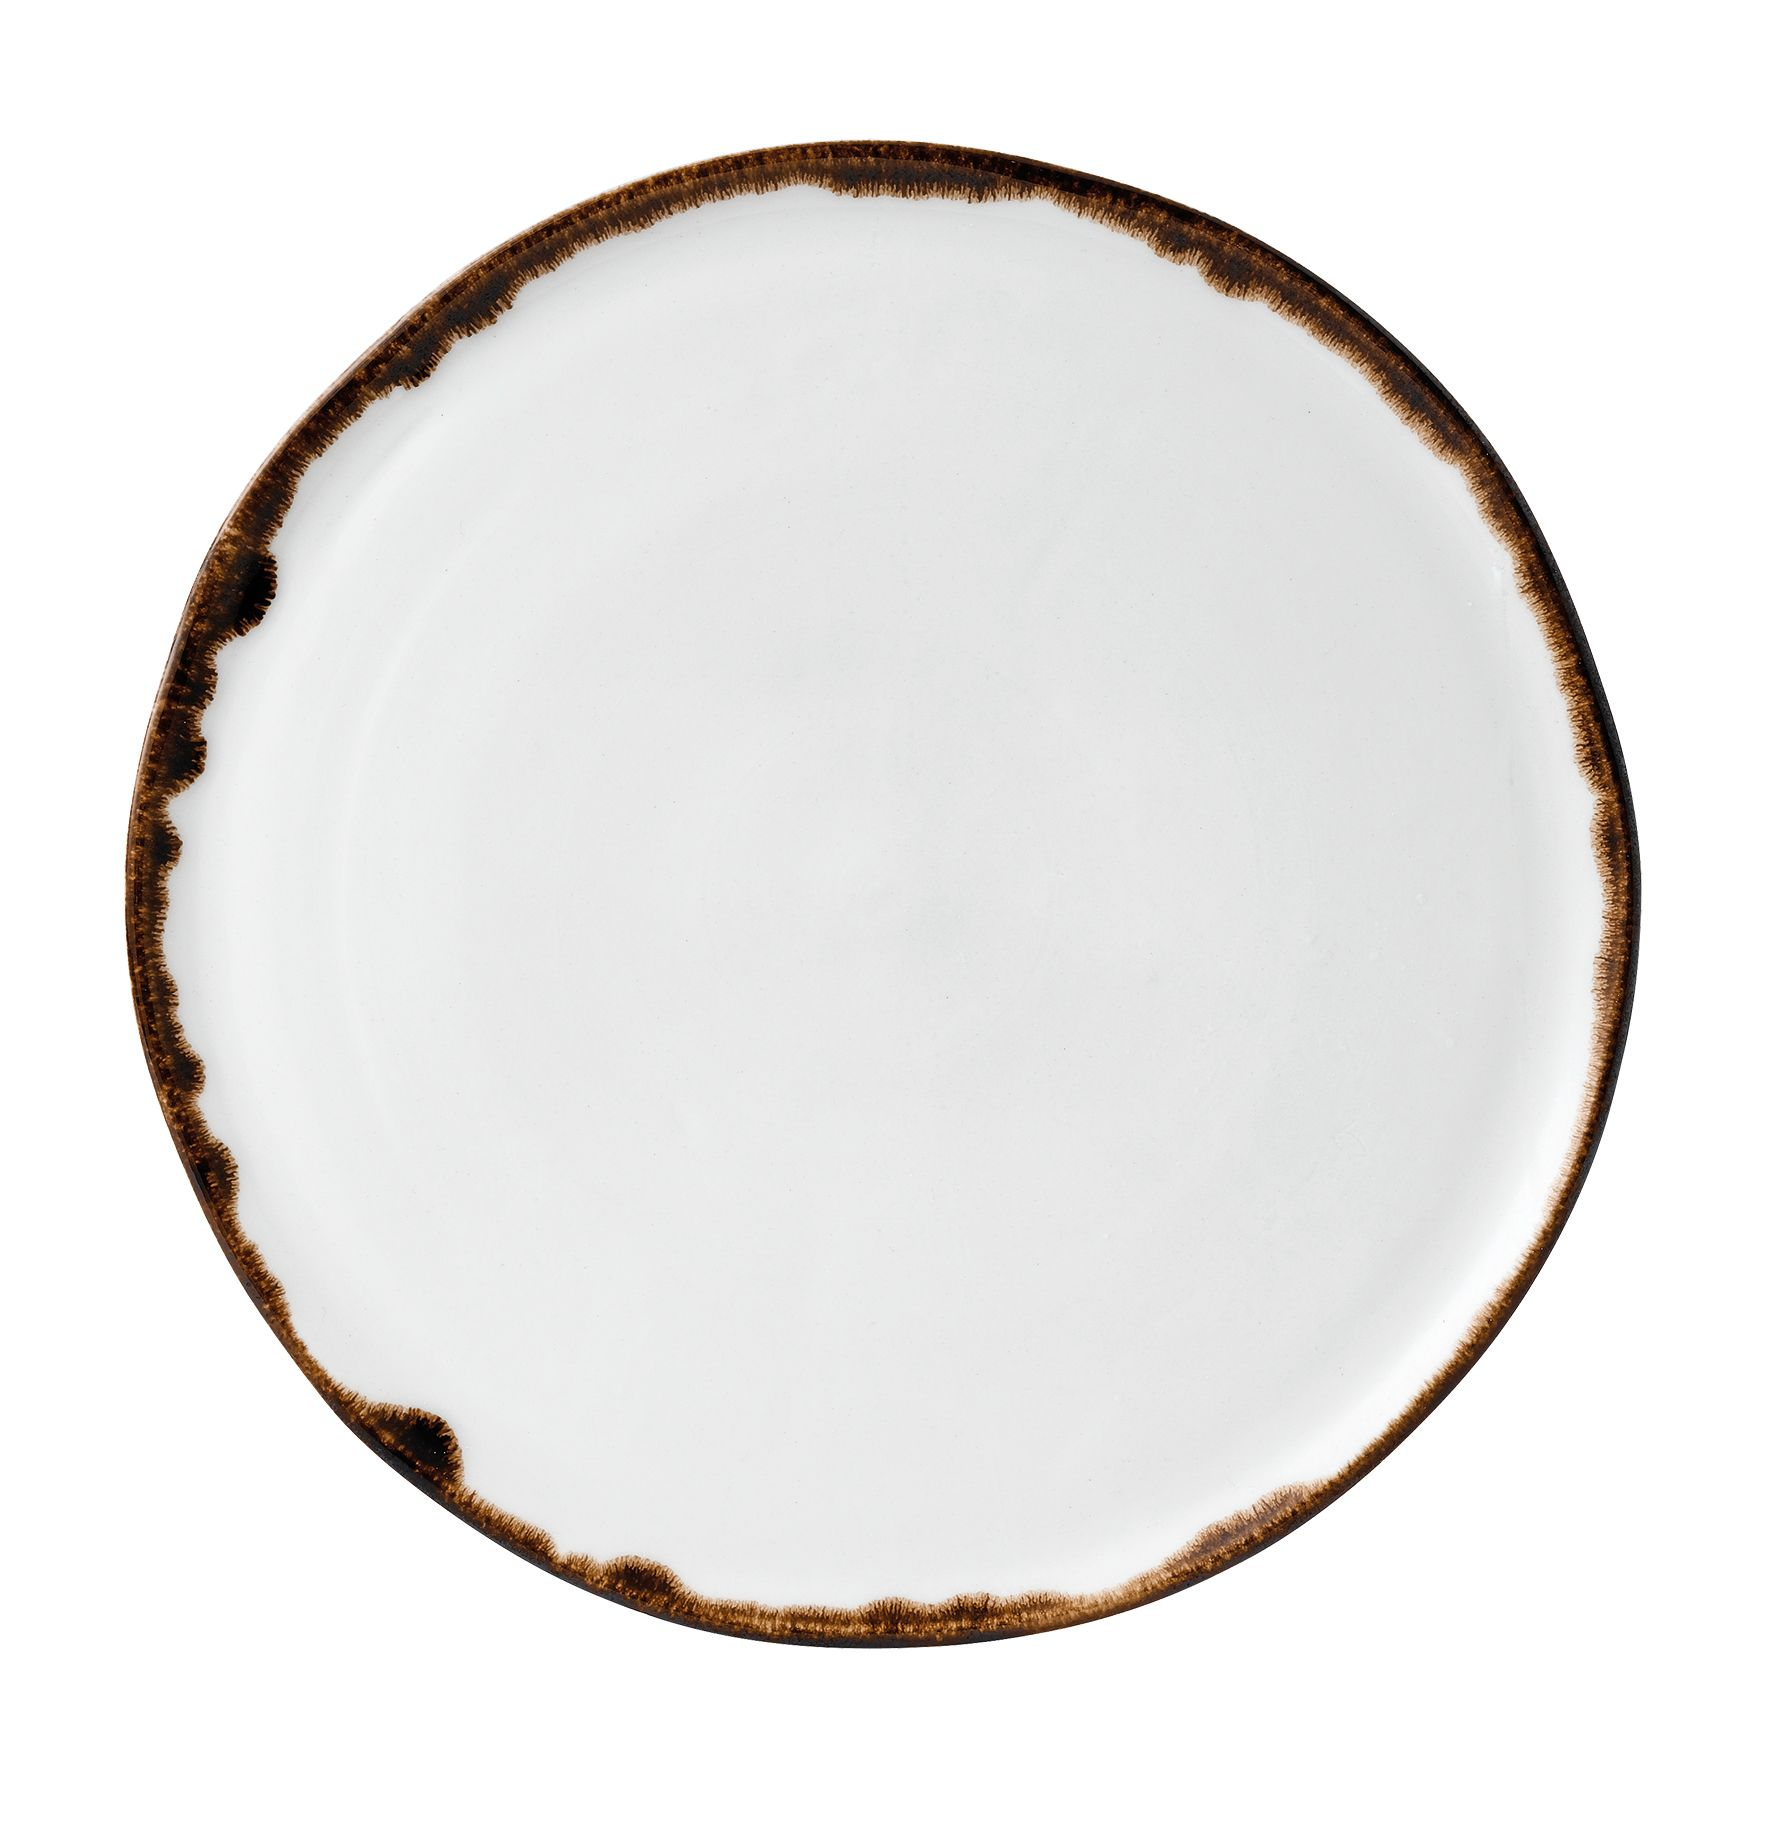 Dudson Harvest Natural Flat Plate 15.2cm - Pack of 24 | Stan ...